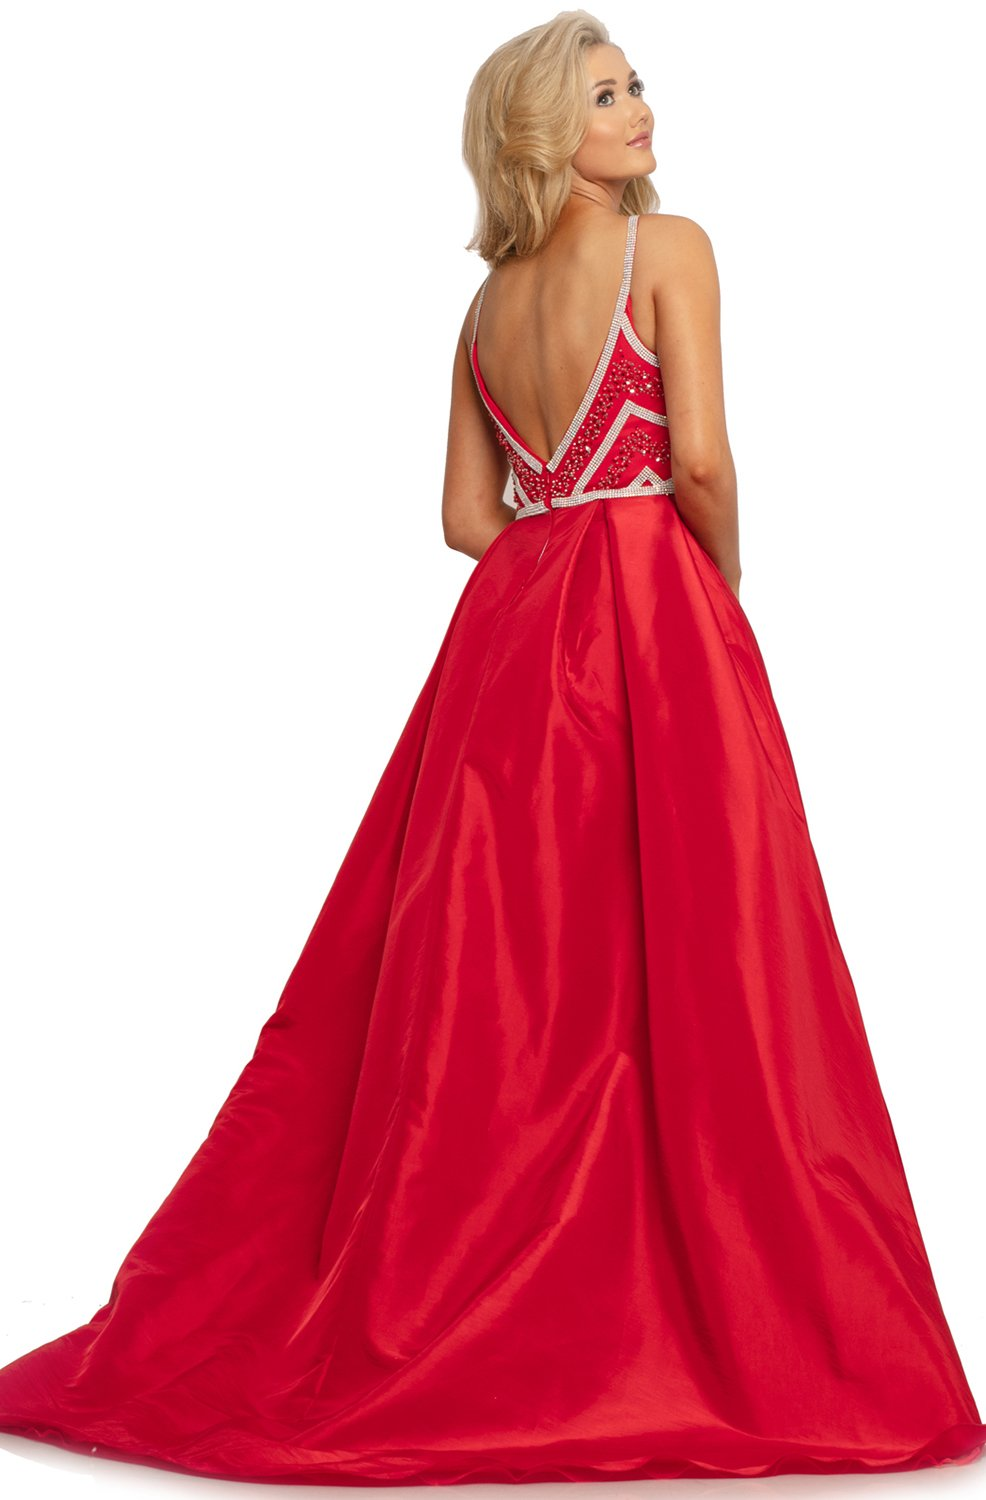 Johnathan Kayne - 2052 Embellished Dress with Ballgown Overskirt In Red